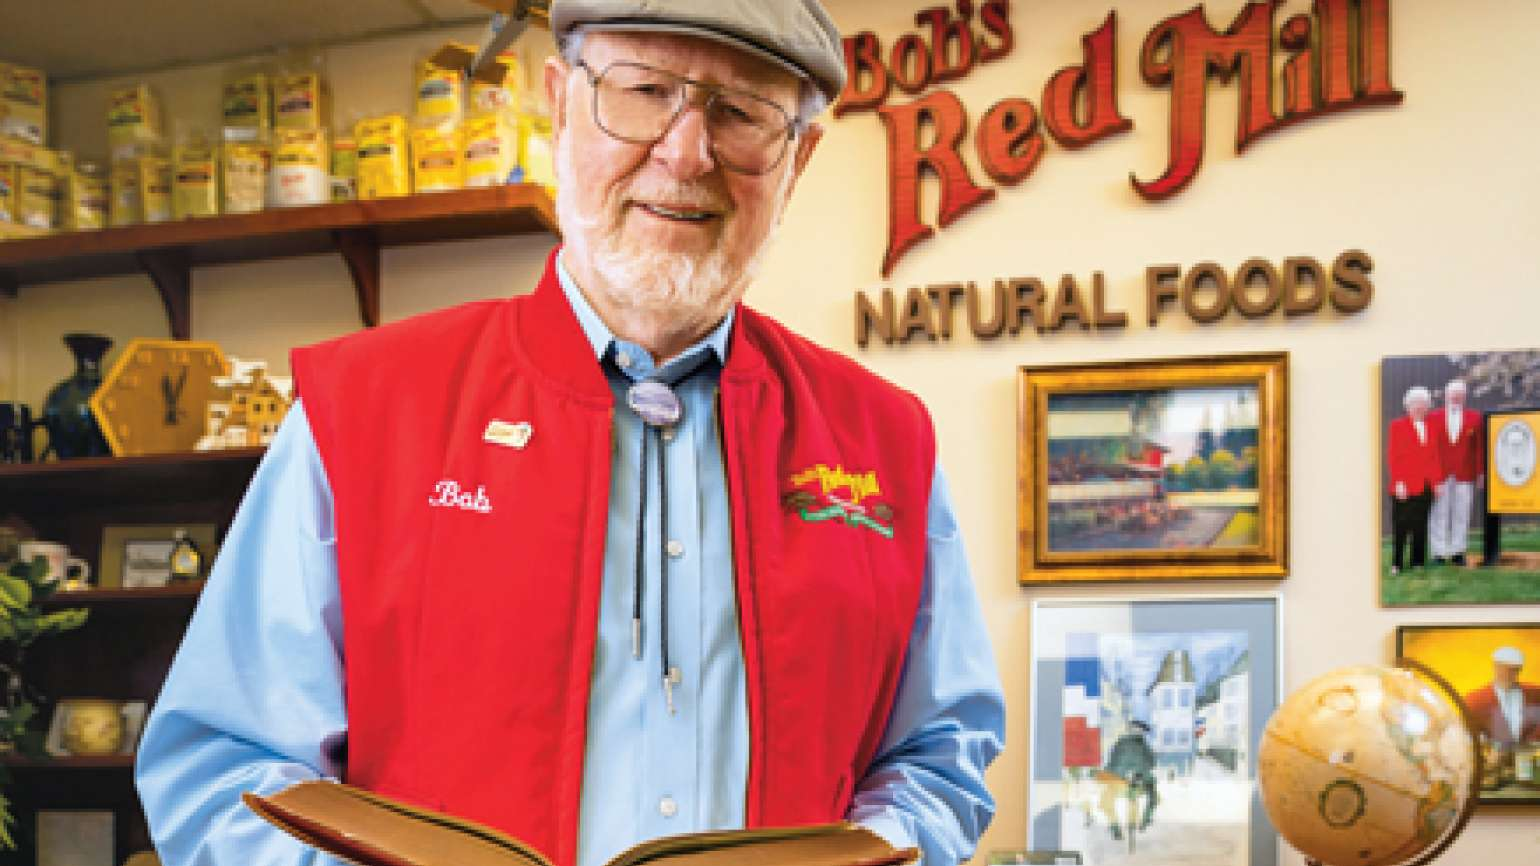 Bob Moore, founder of Bob's Red Mill natural foods